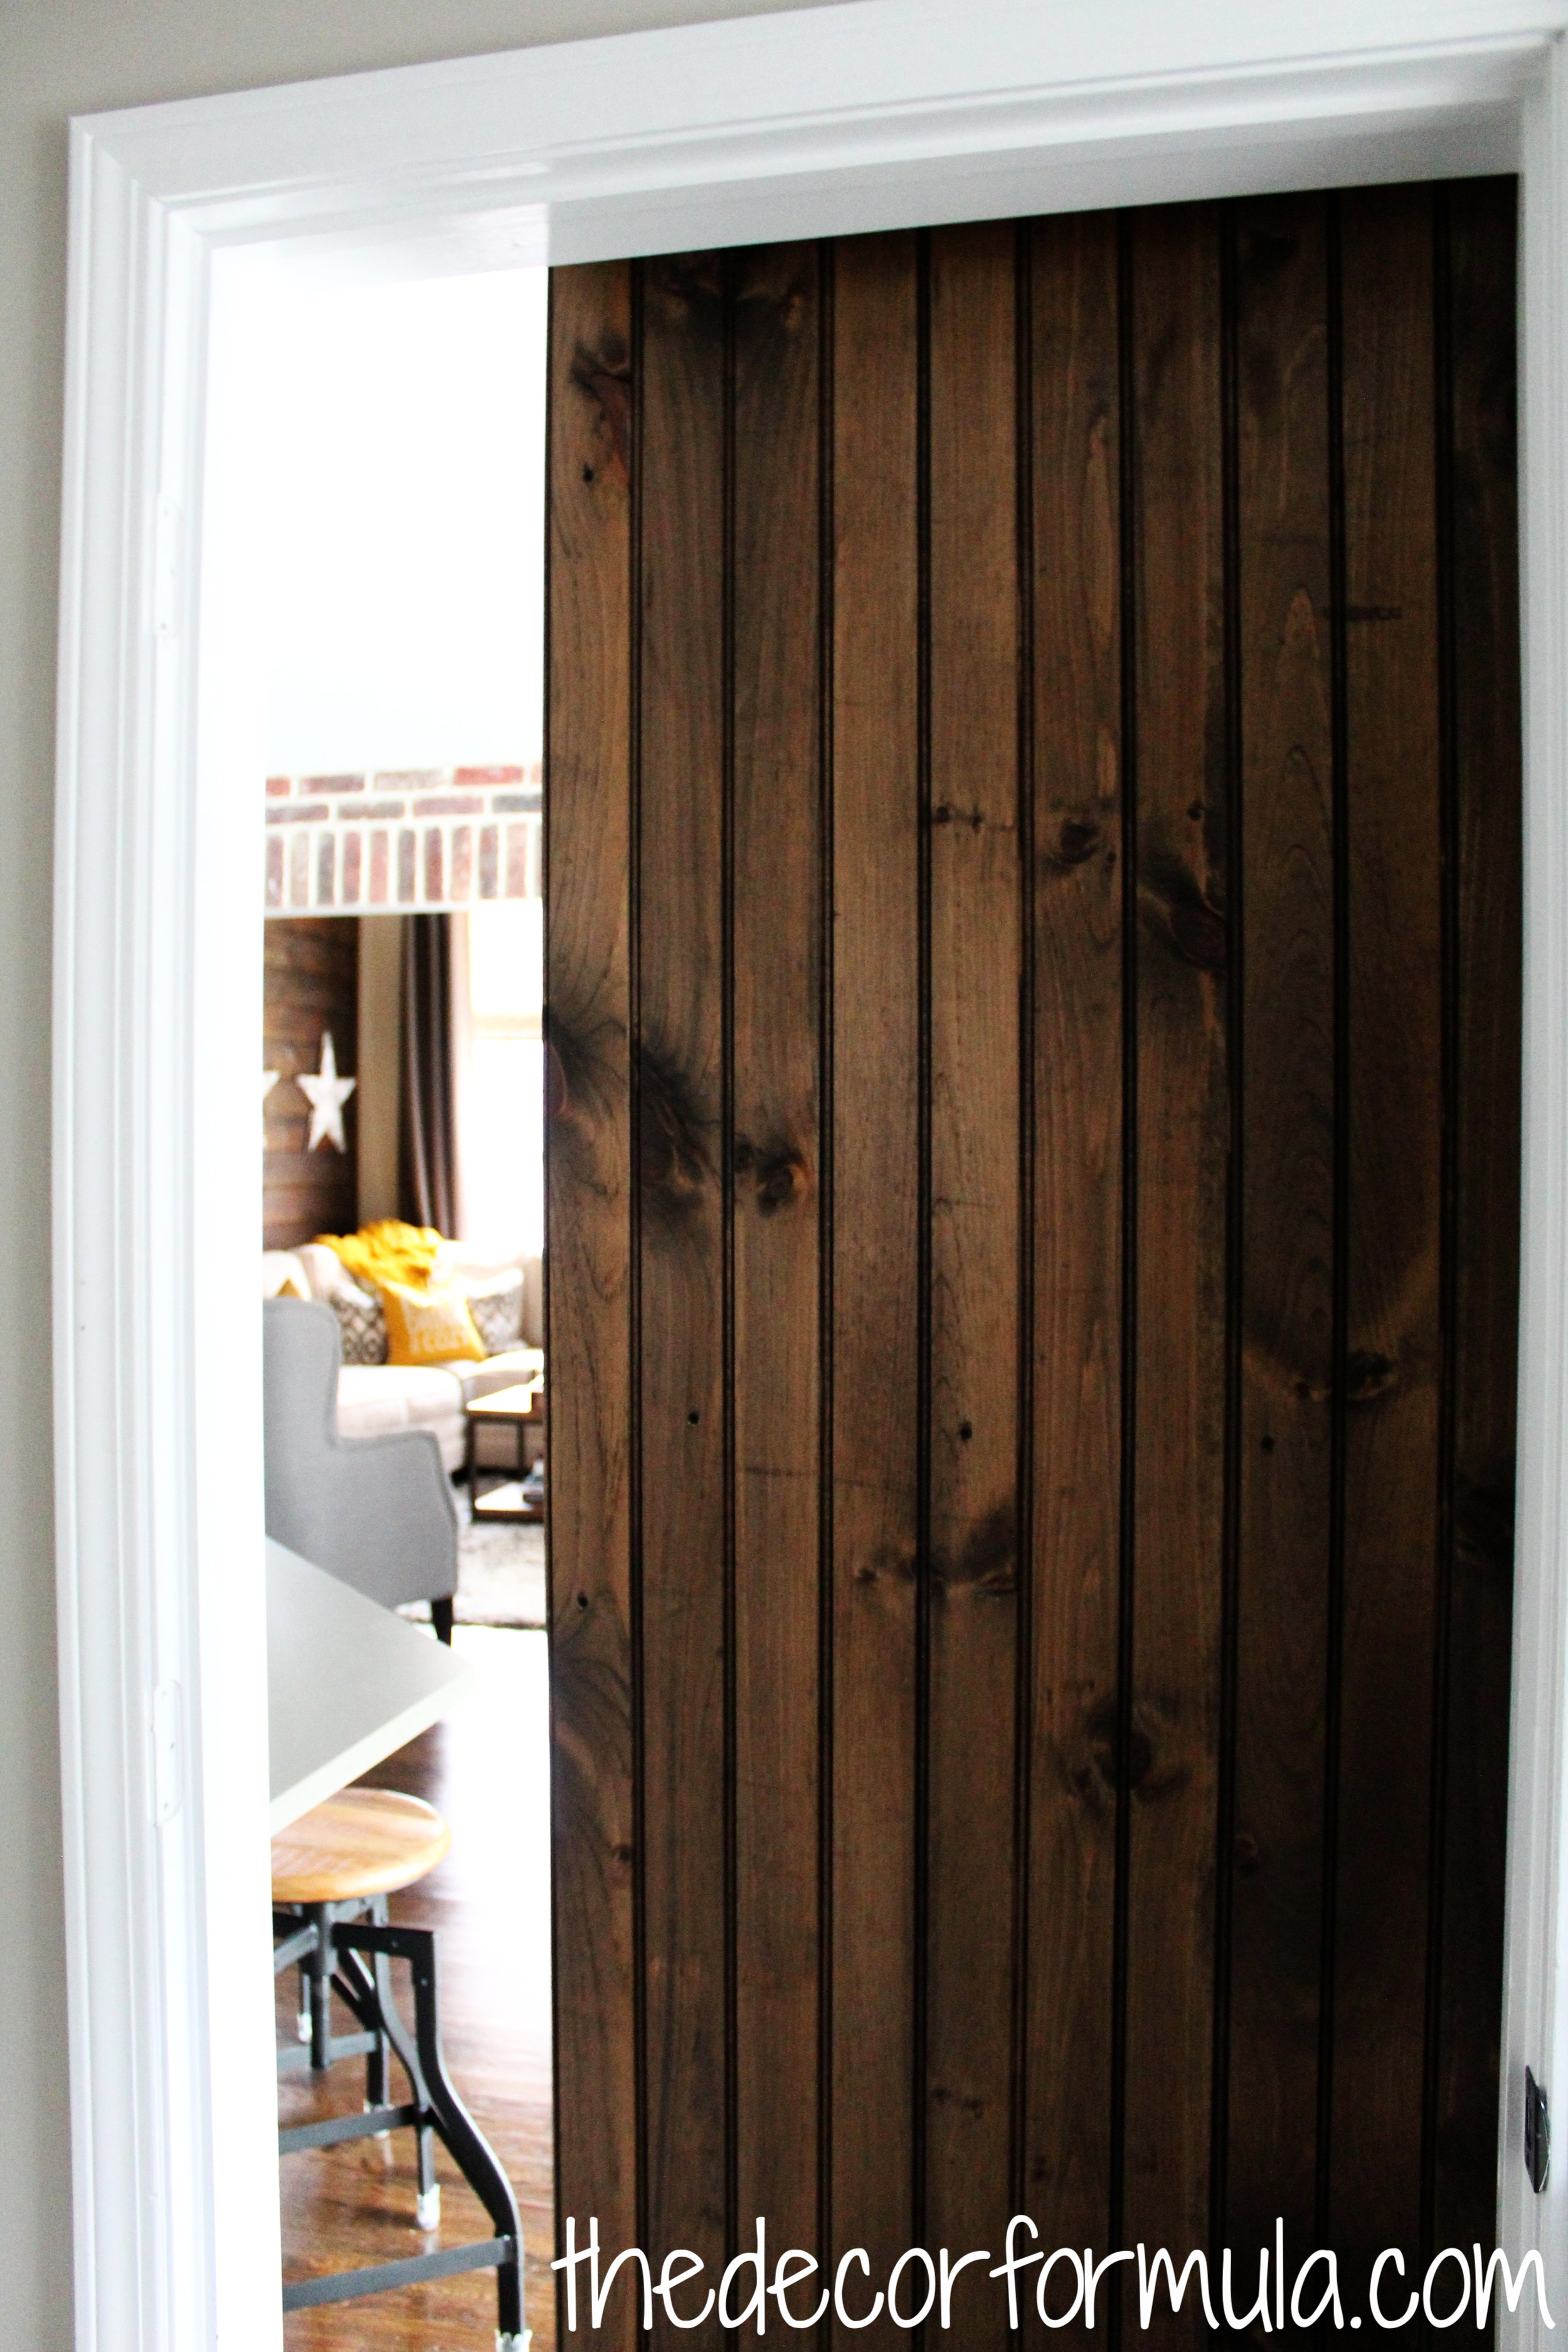 BTW This ^ is what my door looks like from the back side- the tongue and groove shiplap had a beautiful bead board design on the back.  Interested in the chalkboard wall behind the door? Check out my post below.